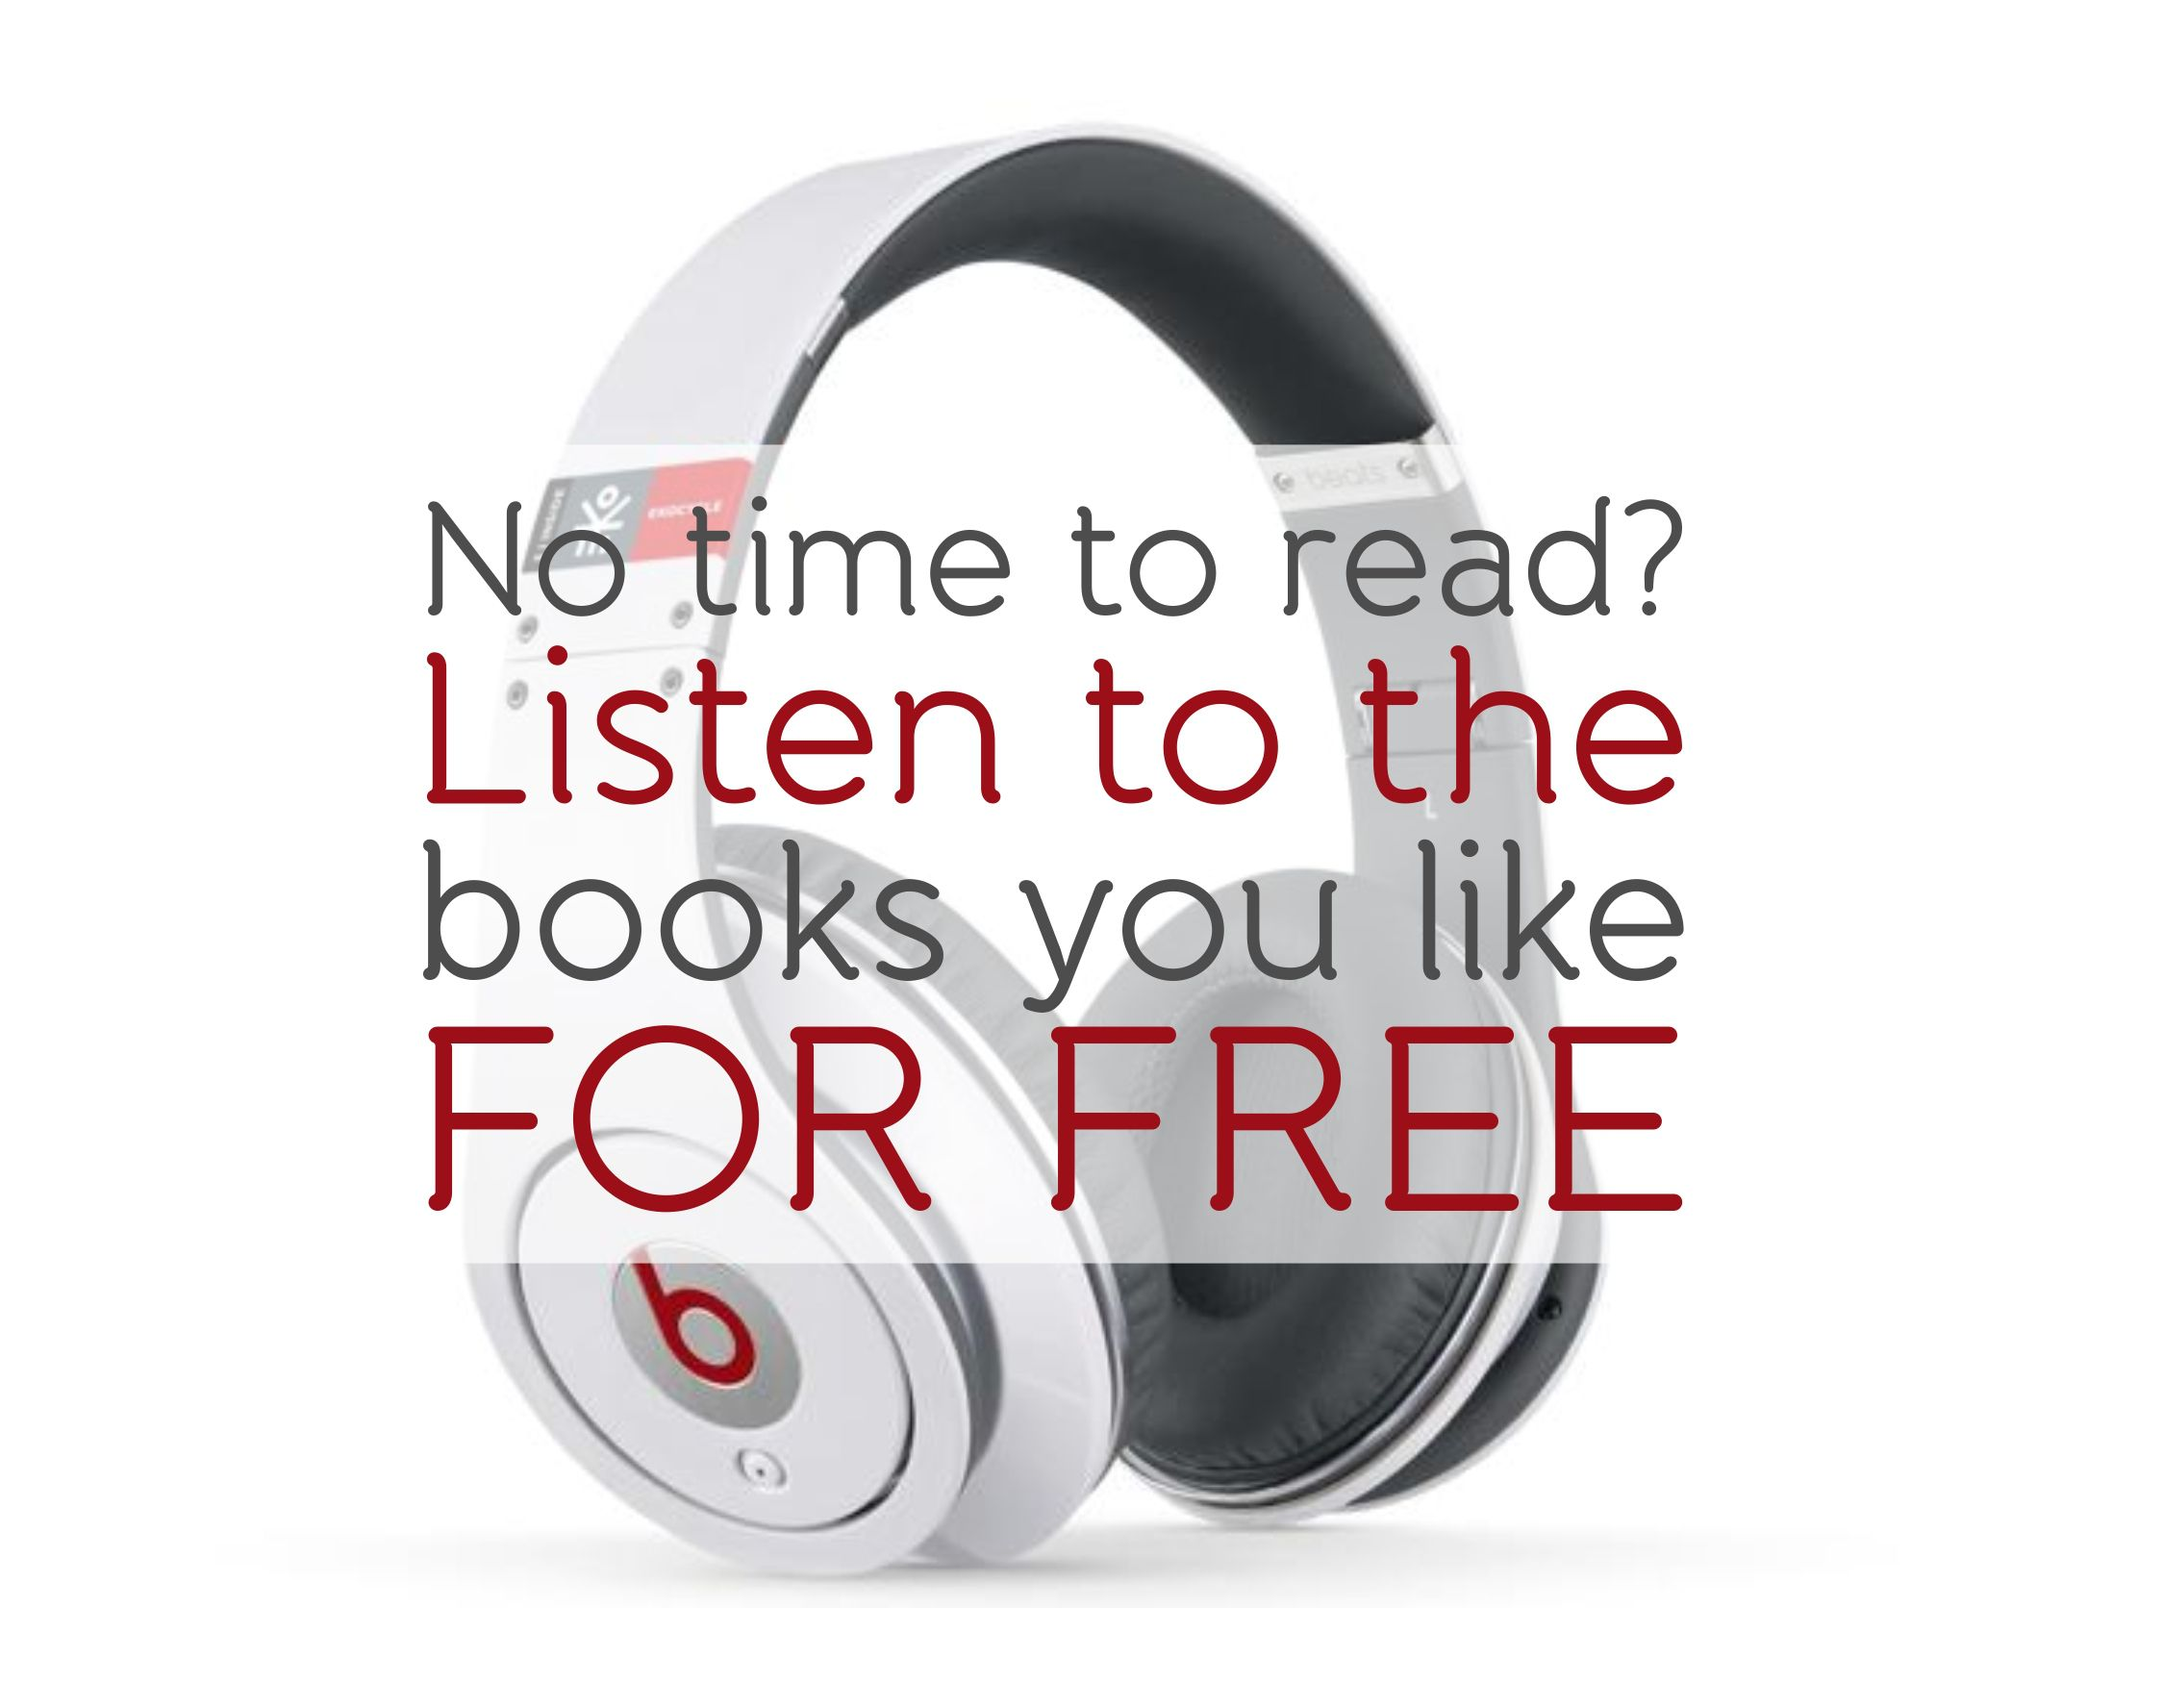 Libros En Ingles Con Audio Gratis Free Books 100 Legal Sites To Download Literature Just English